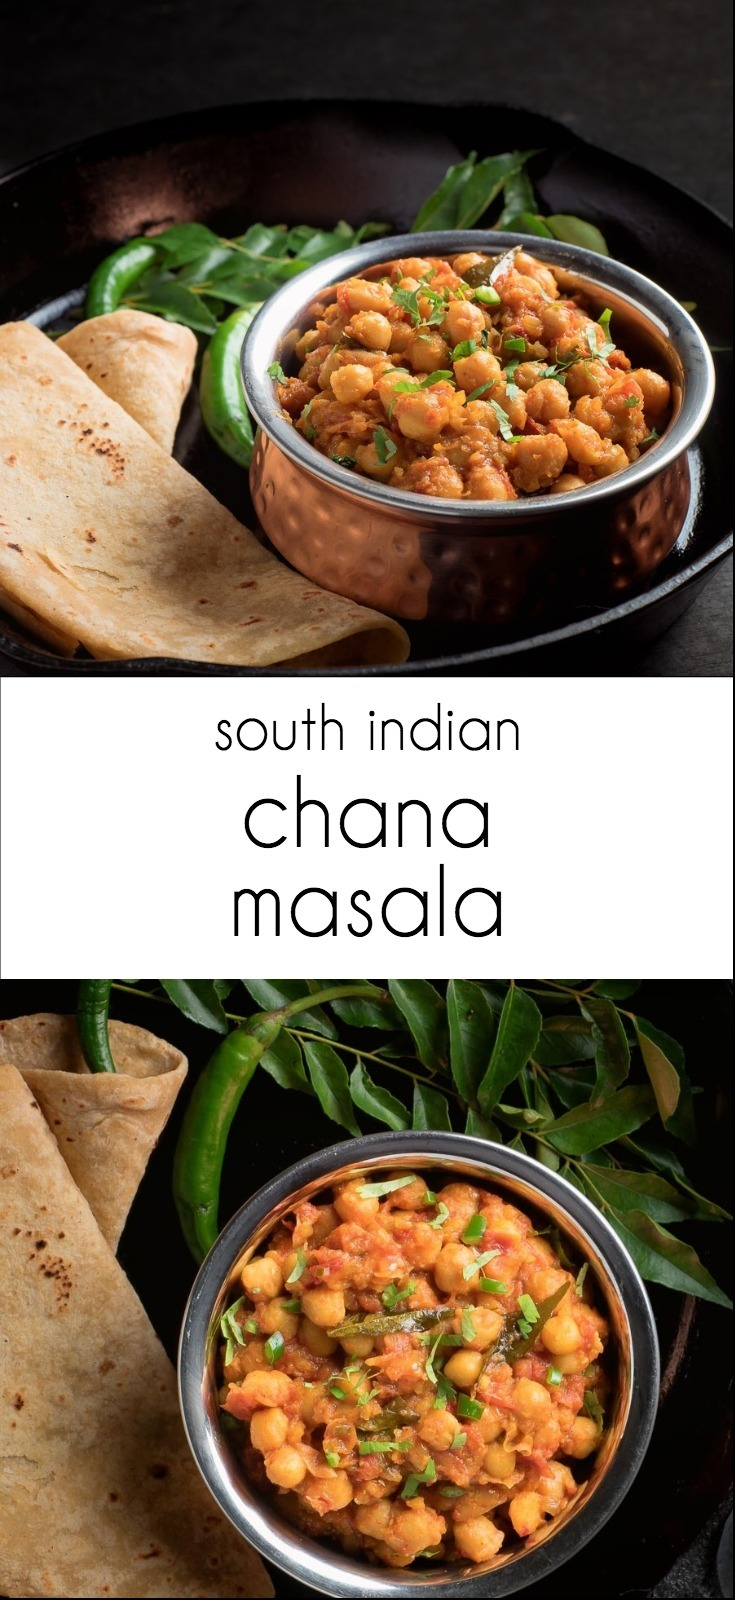 South Indian chana masala - big fresh flavours in this classic Indian chickpea dish.